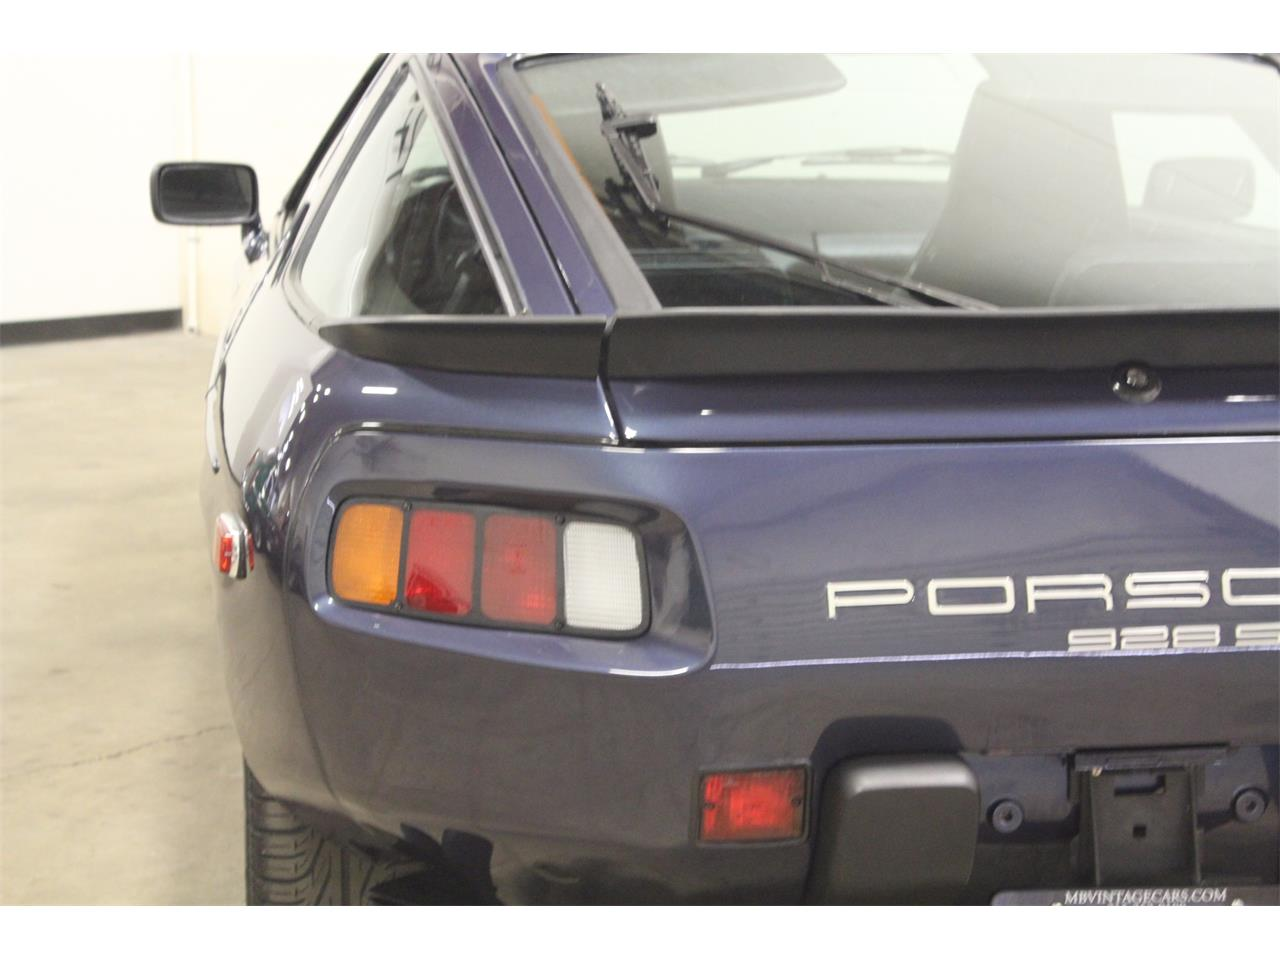 1985 Porsche 928S for sale in Cleveland, OH – photo 8